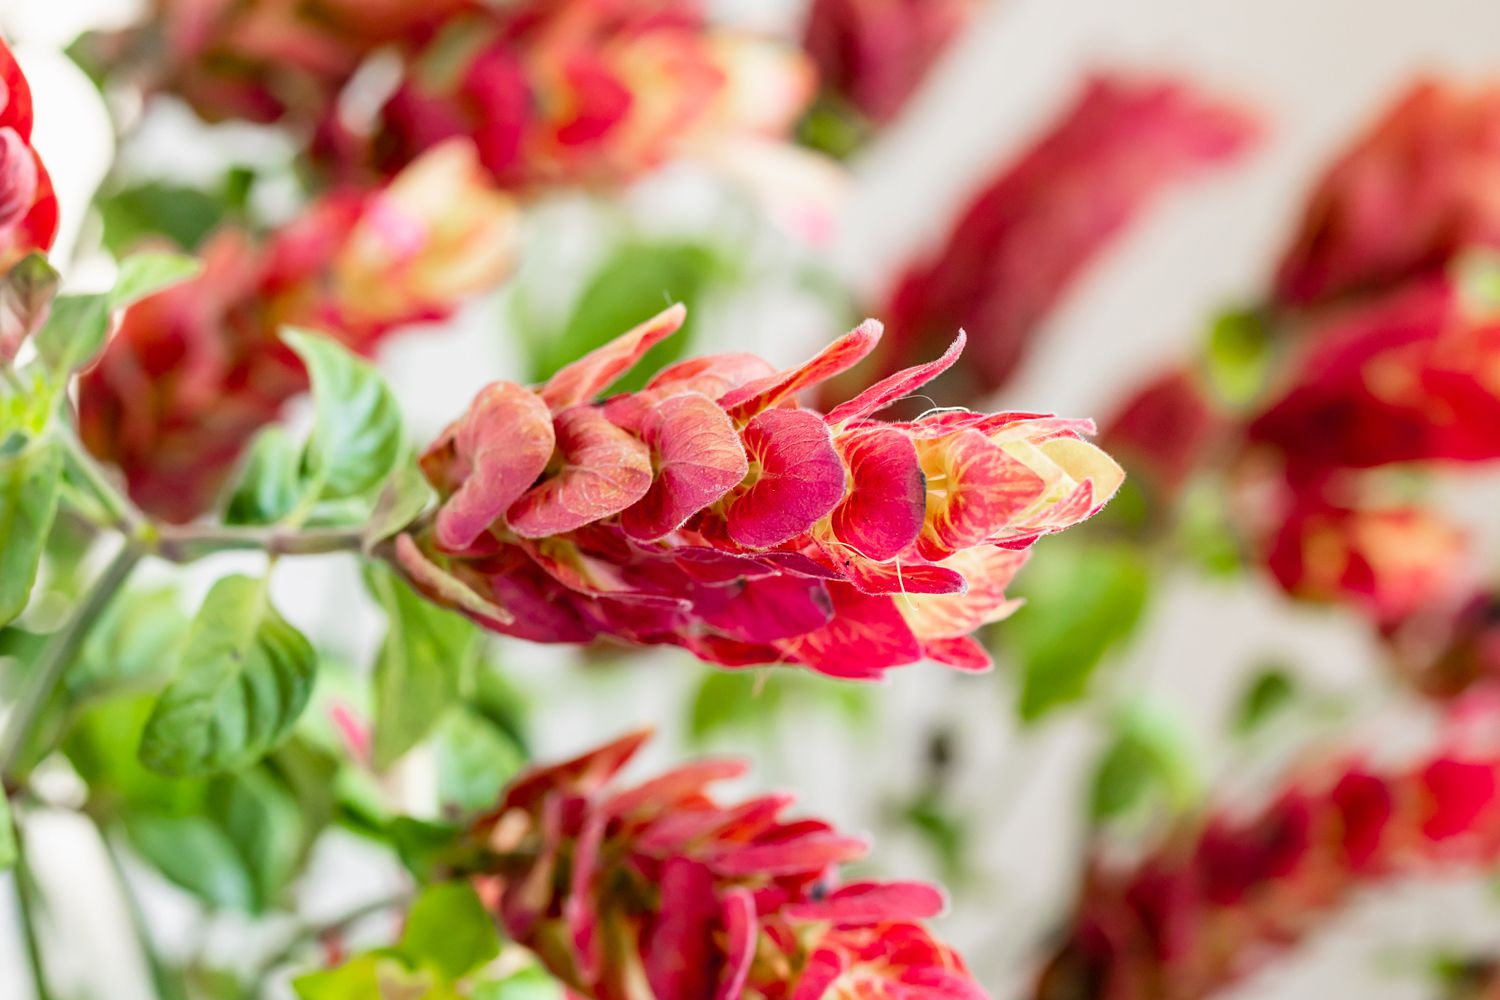 Justicia brandegeana shrimp plant stem with red and yellow bracts on end closeup